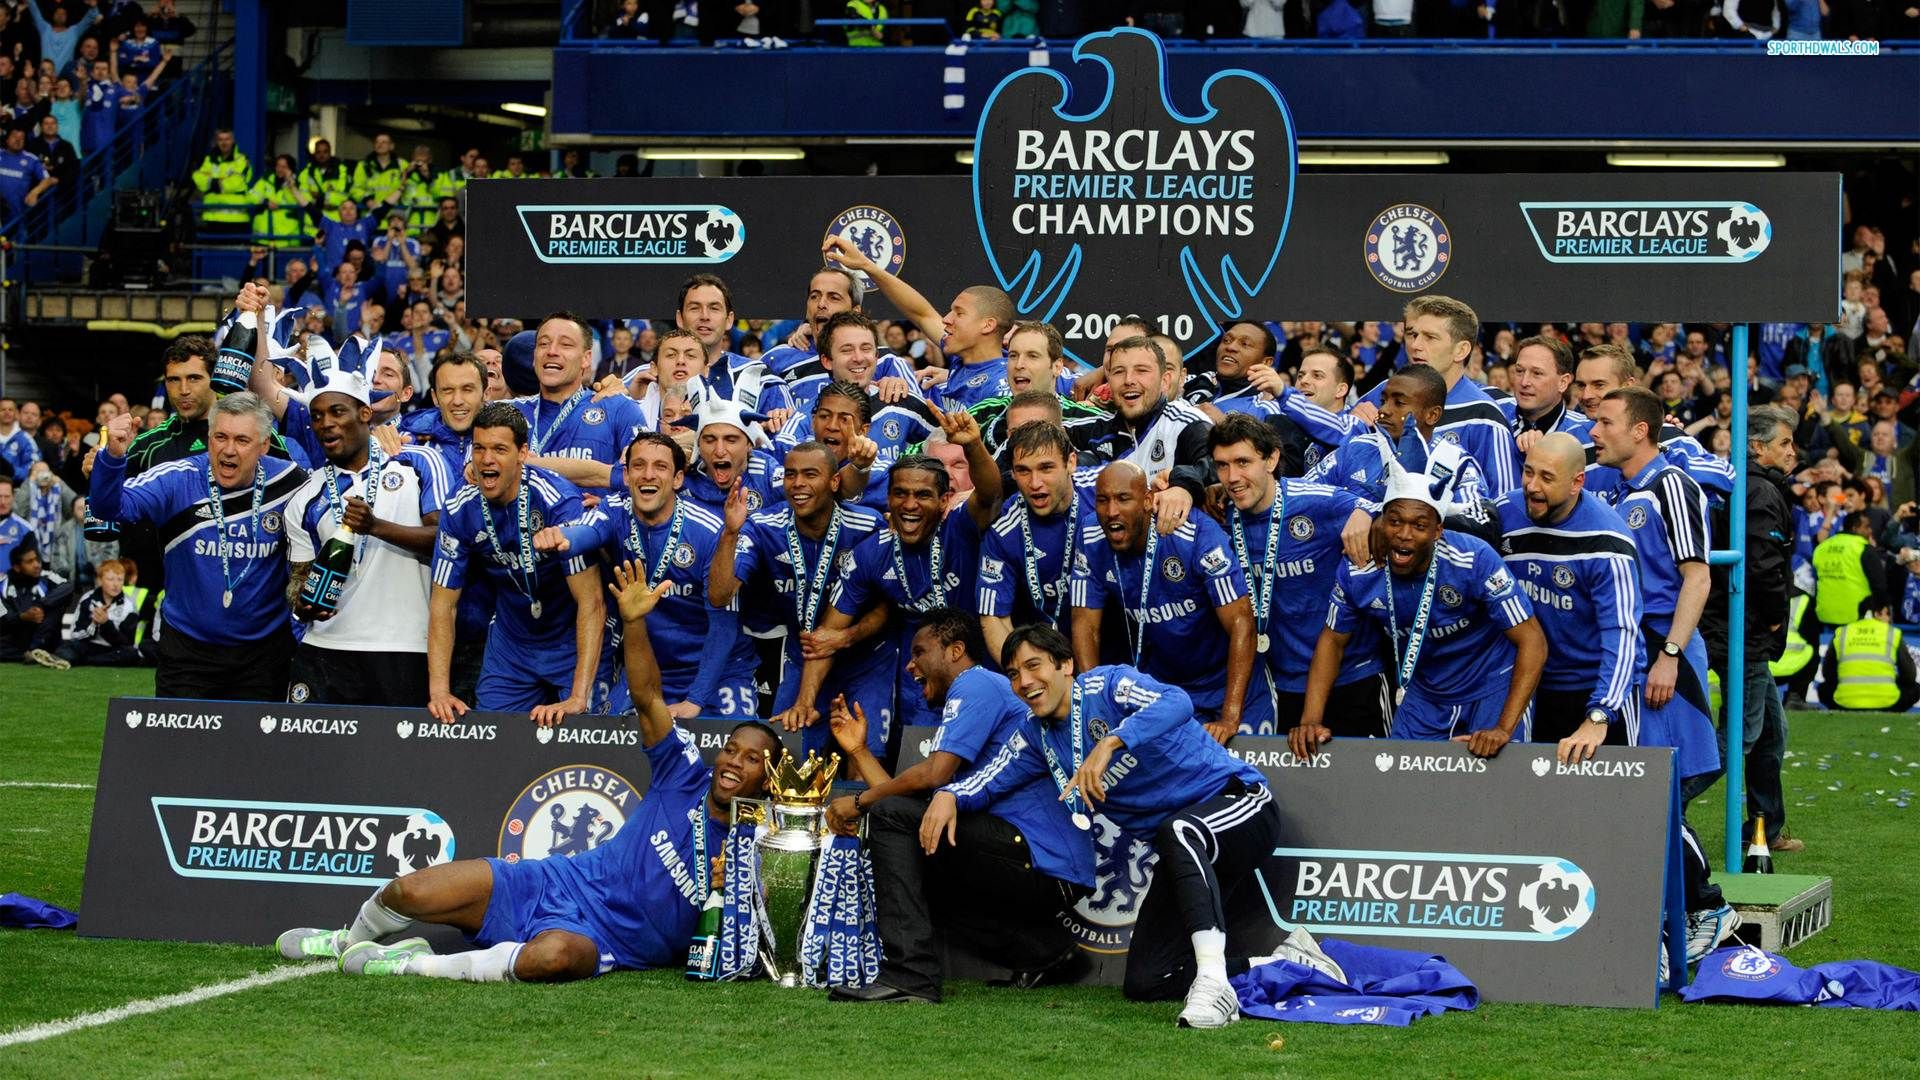 Chelsea wallpaper 2015 hd wallpapersafari epic car wallpapers can chelsea fc win the barclays premier league title this season once again voltagebd Images